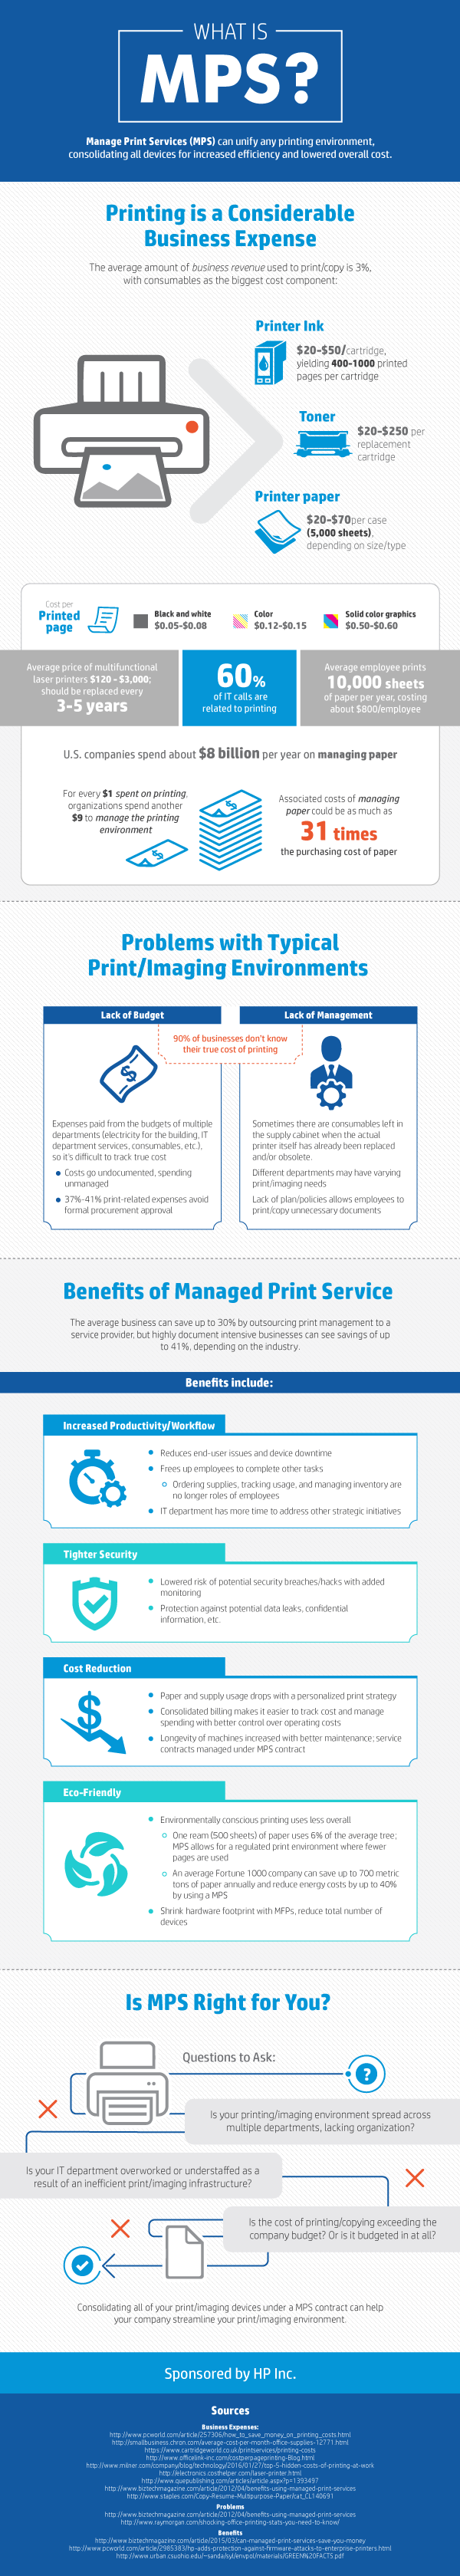 Hp_mps_infographic_final